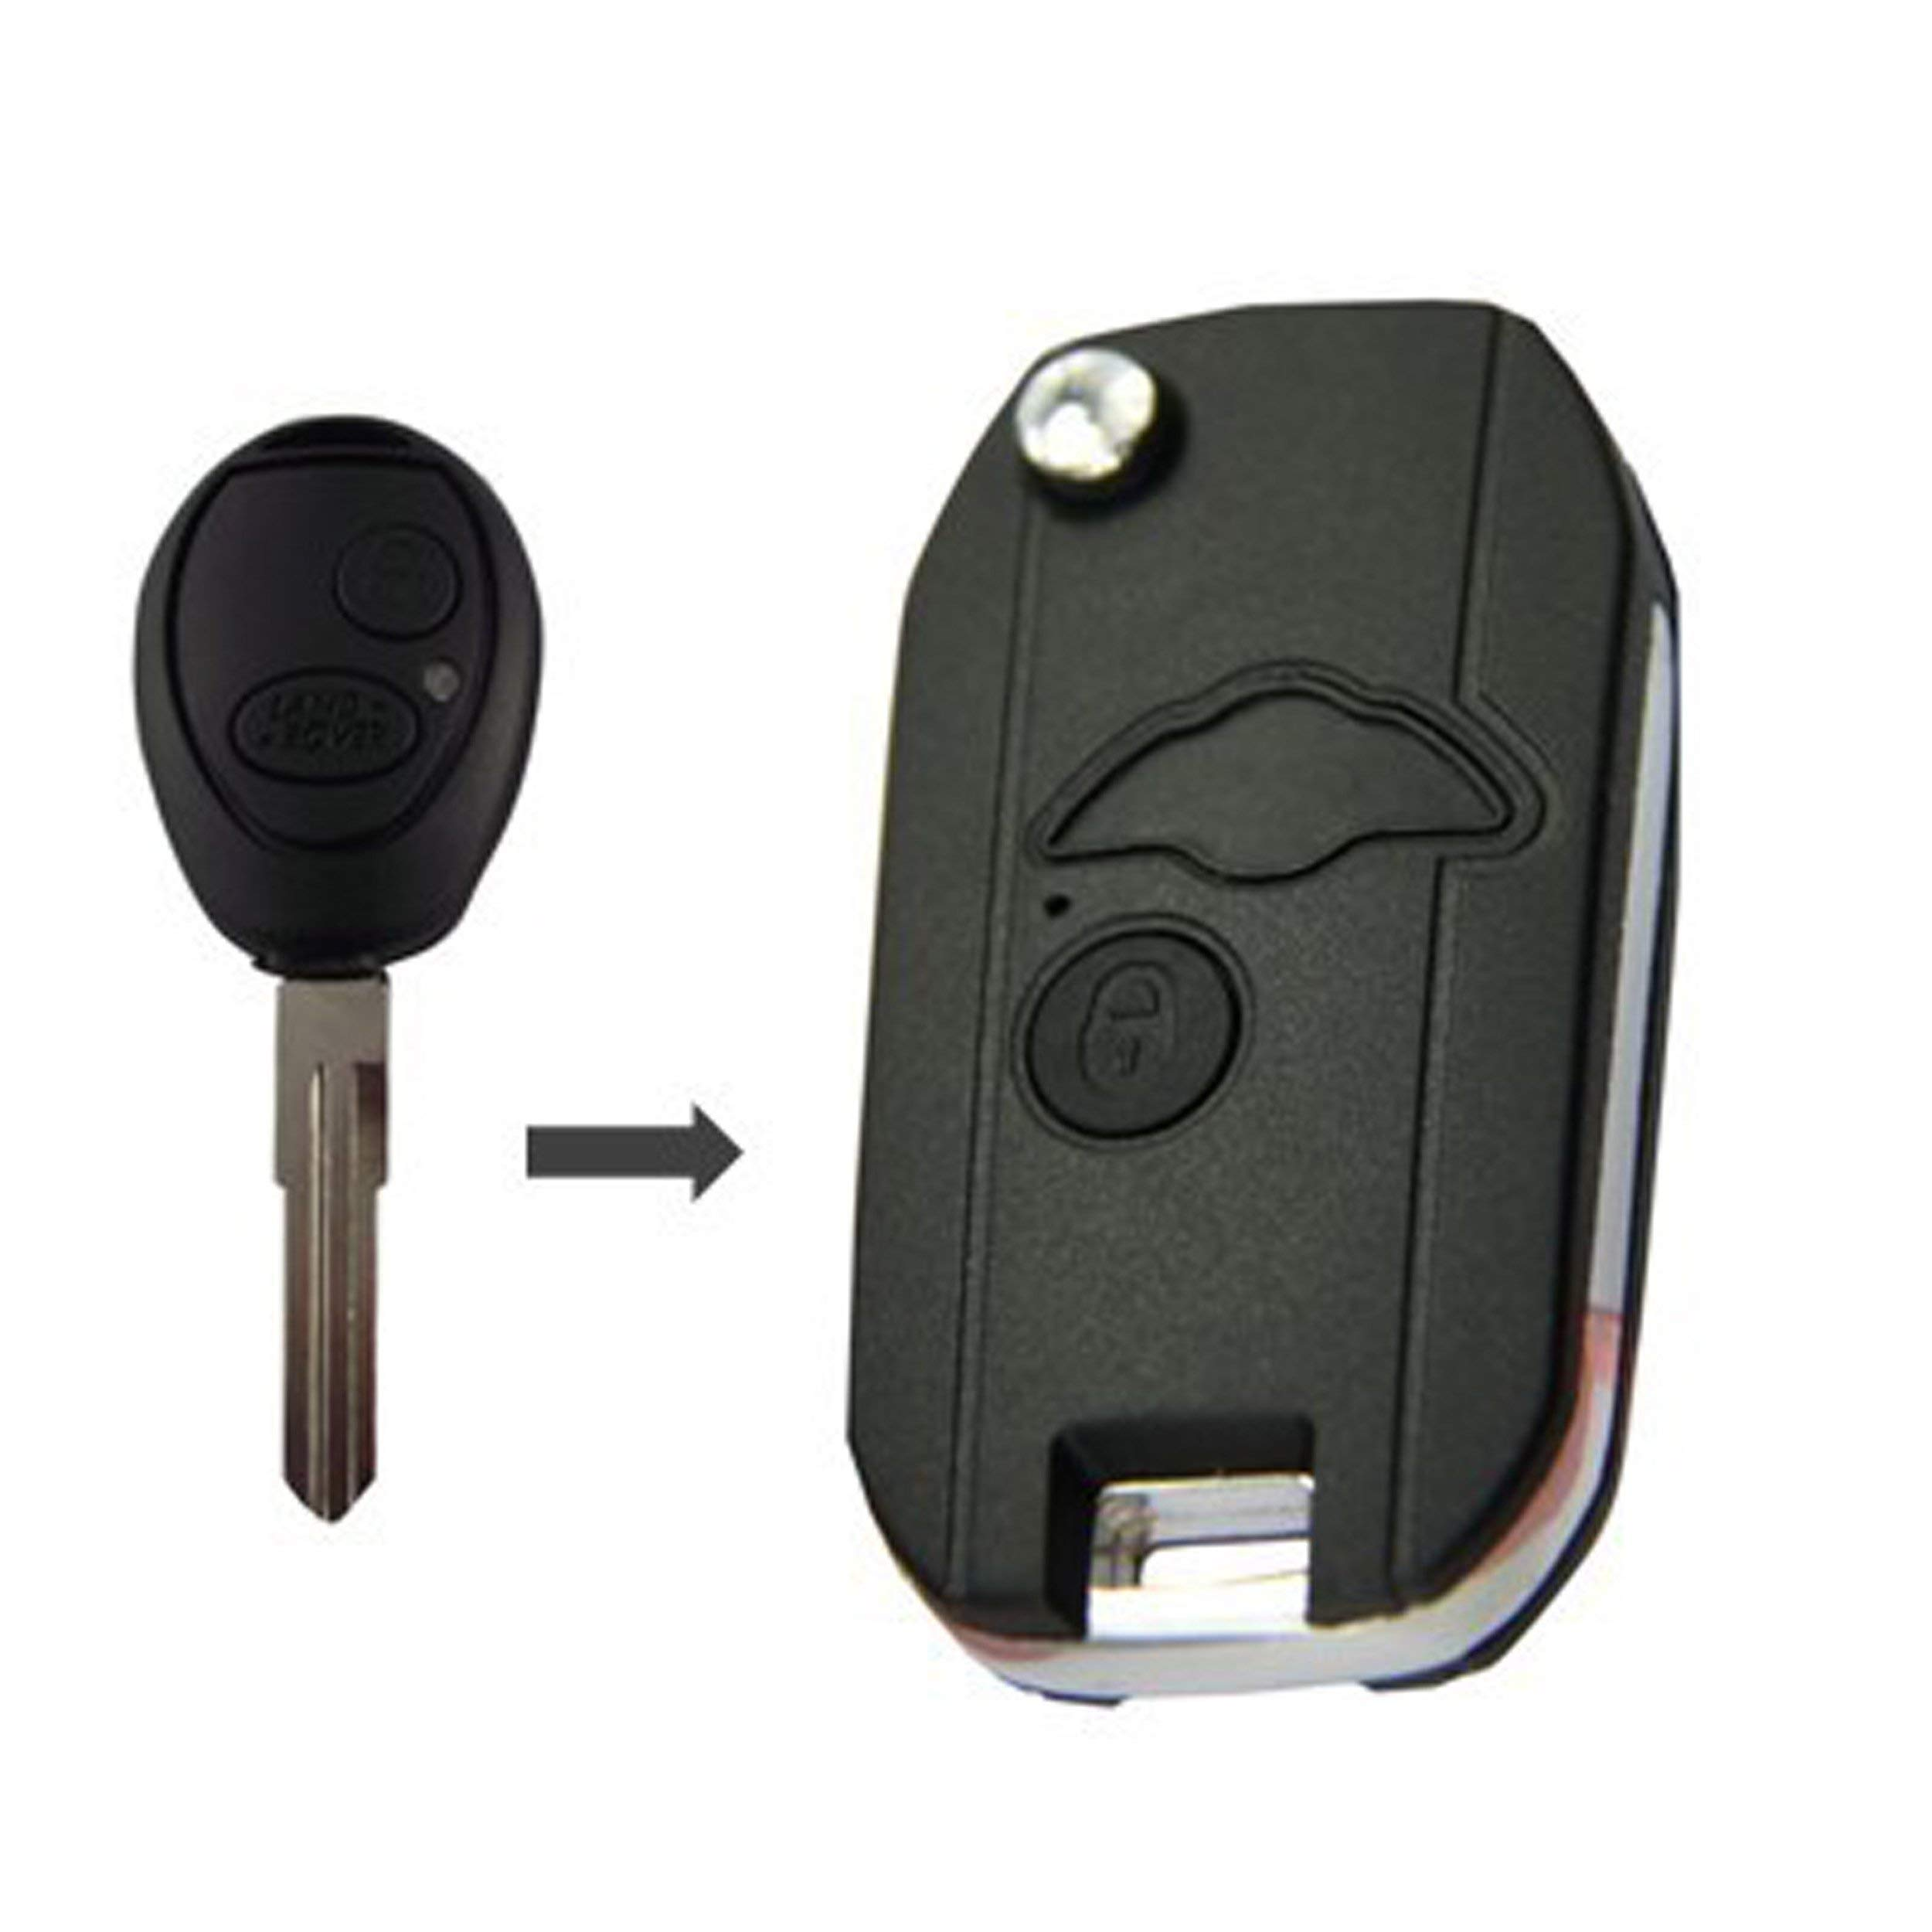 Land Rover Discovery II 2 Button Remote Uncut Key Blank Fob Shell 1999 2004